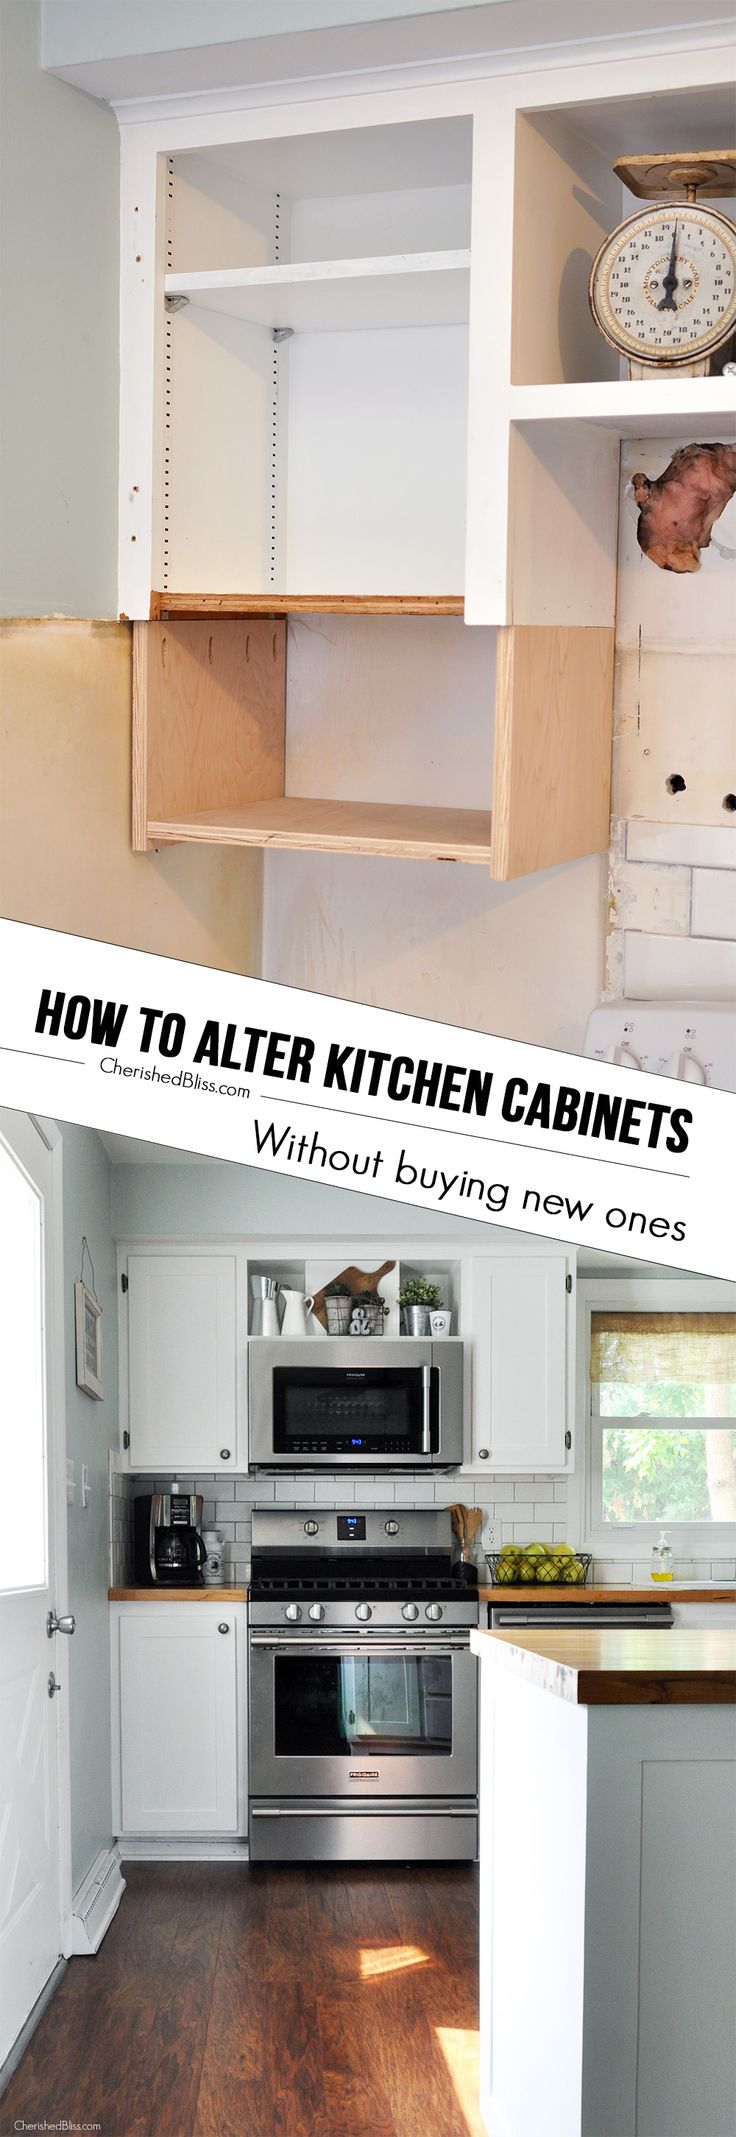 cabinet door replacement kitchen cabinet door replacement How to Alter Kitchen Cabinets